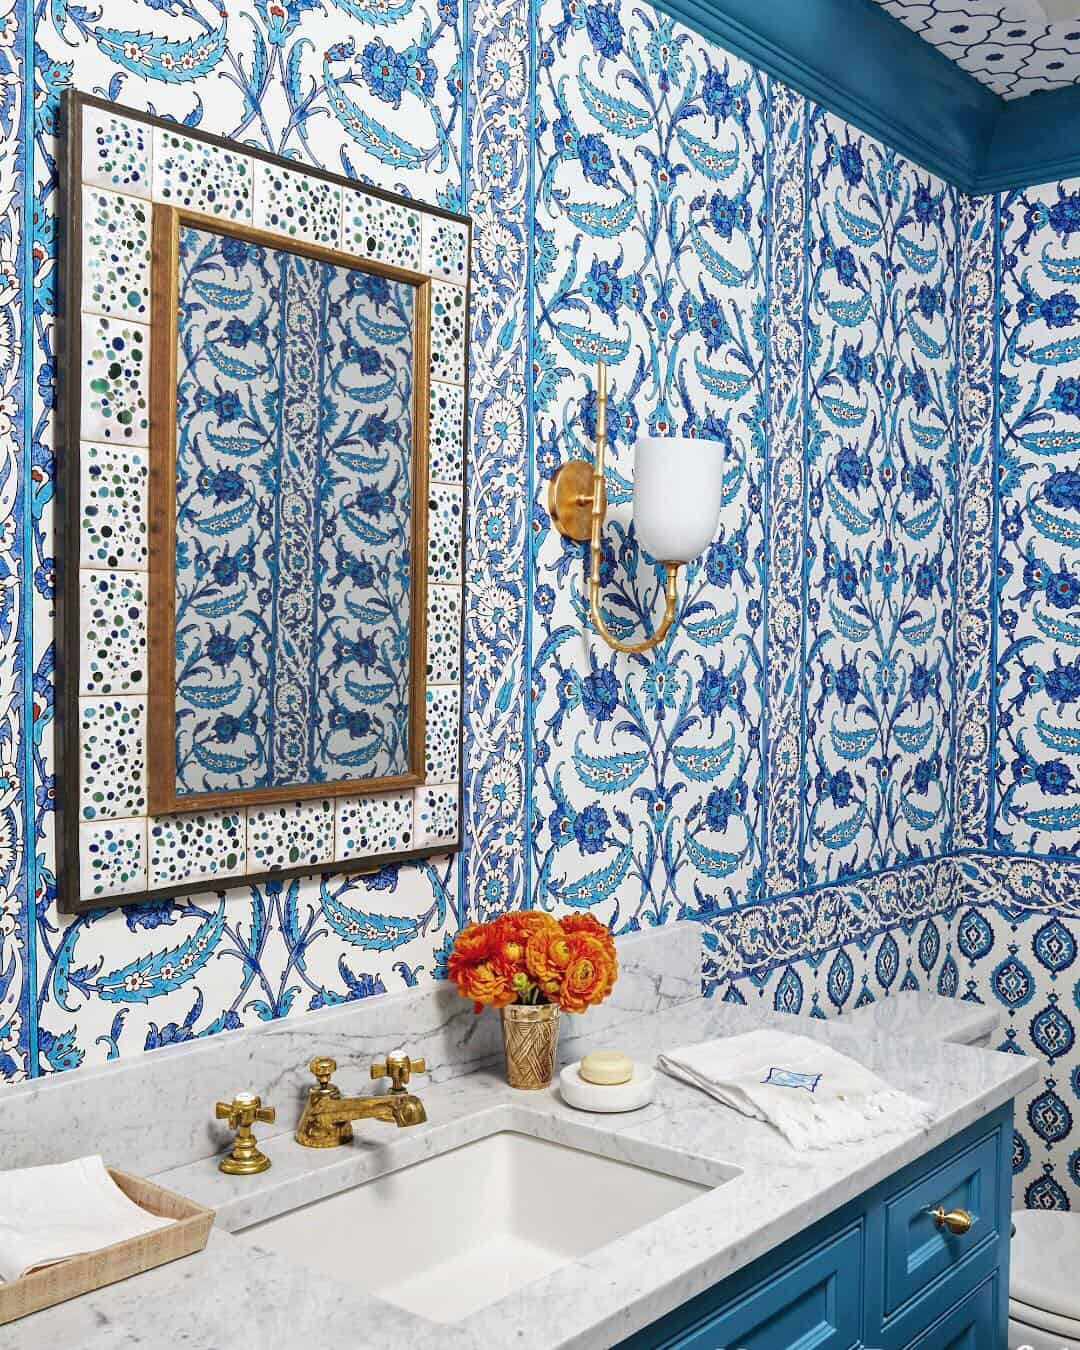 26 Serene Blue Bathroom Design Ideas